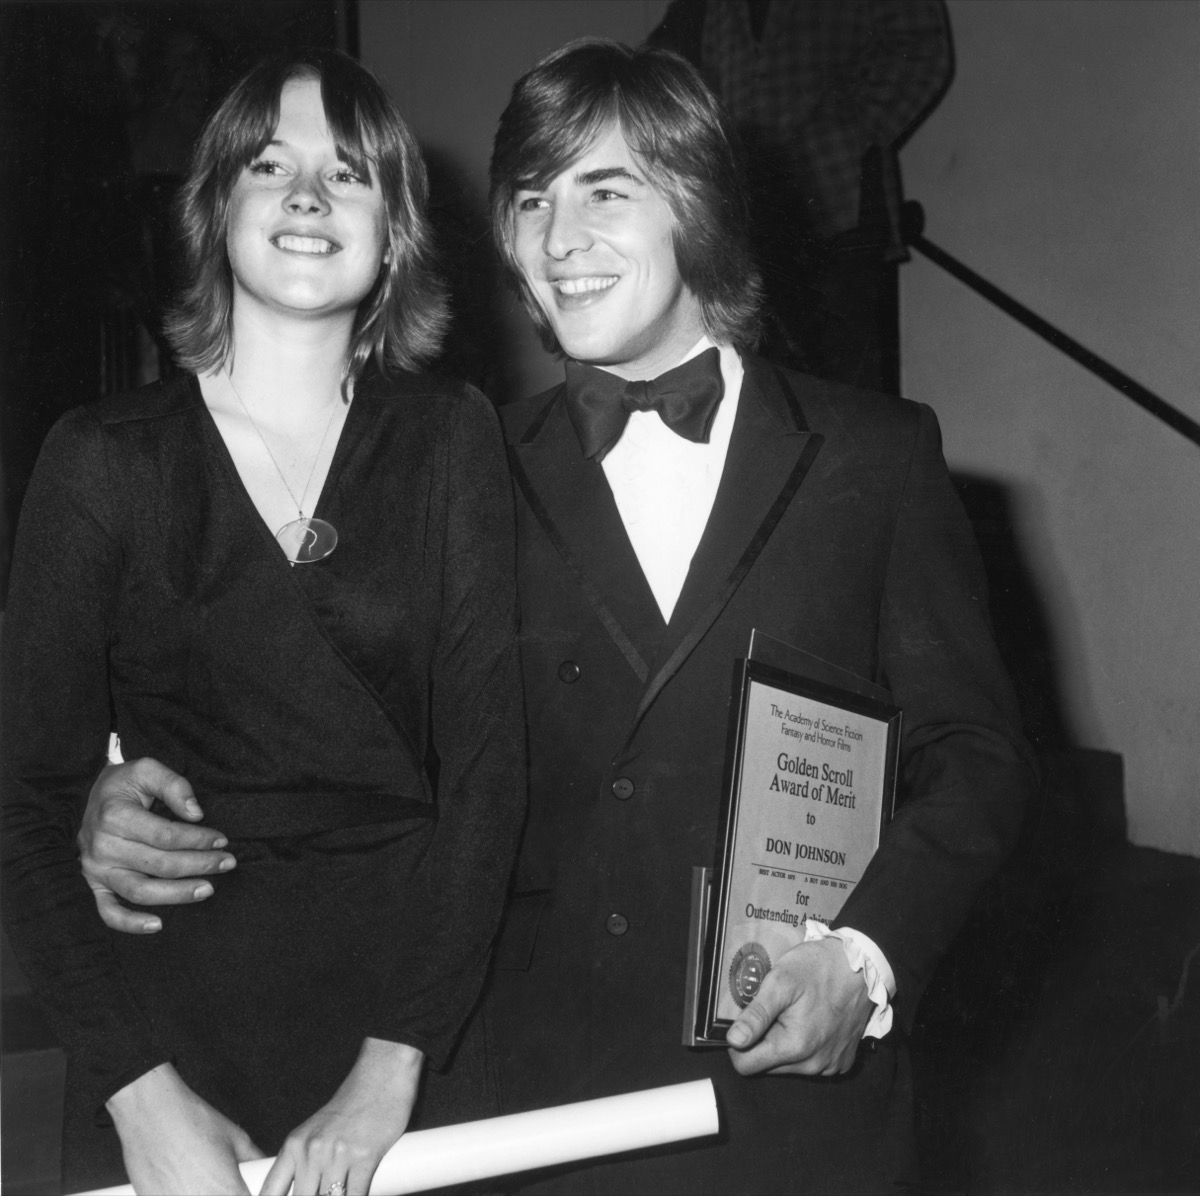 Melanie Griffith and Don Johnson in 1976